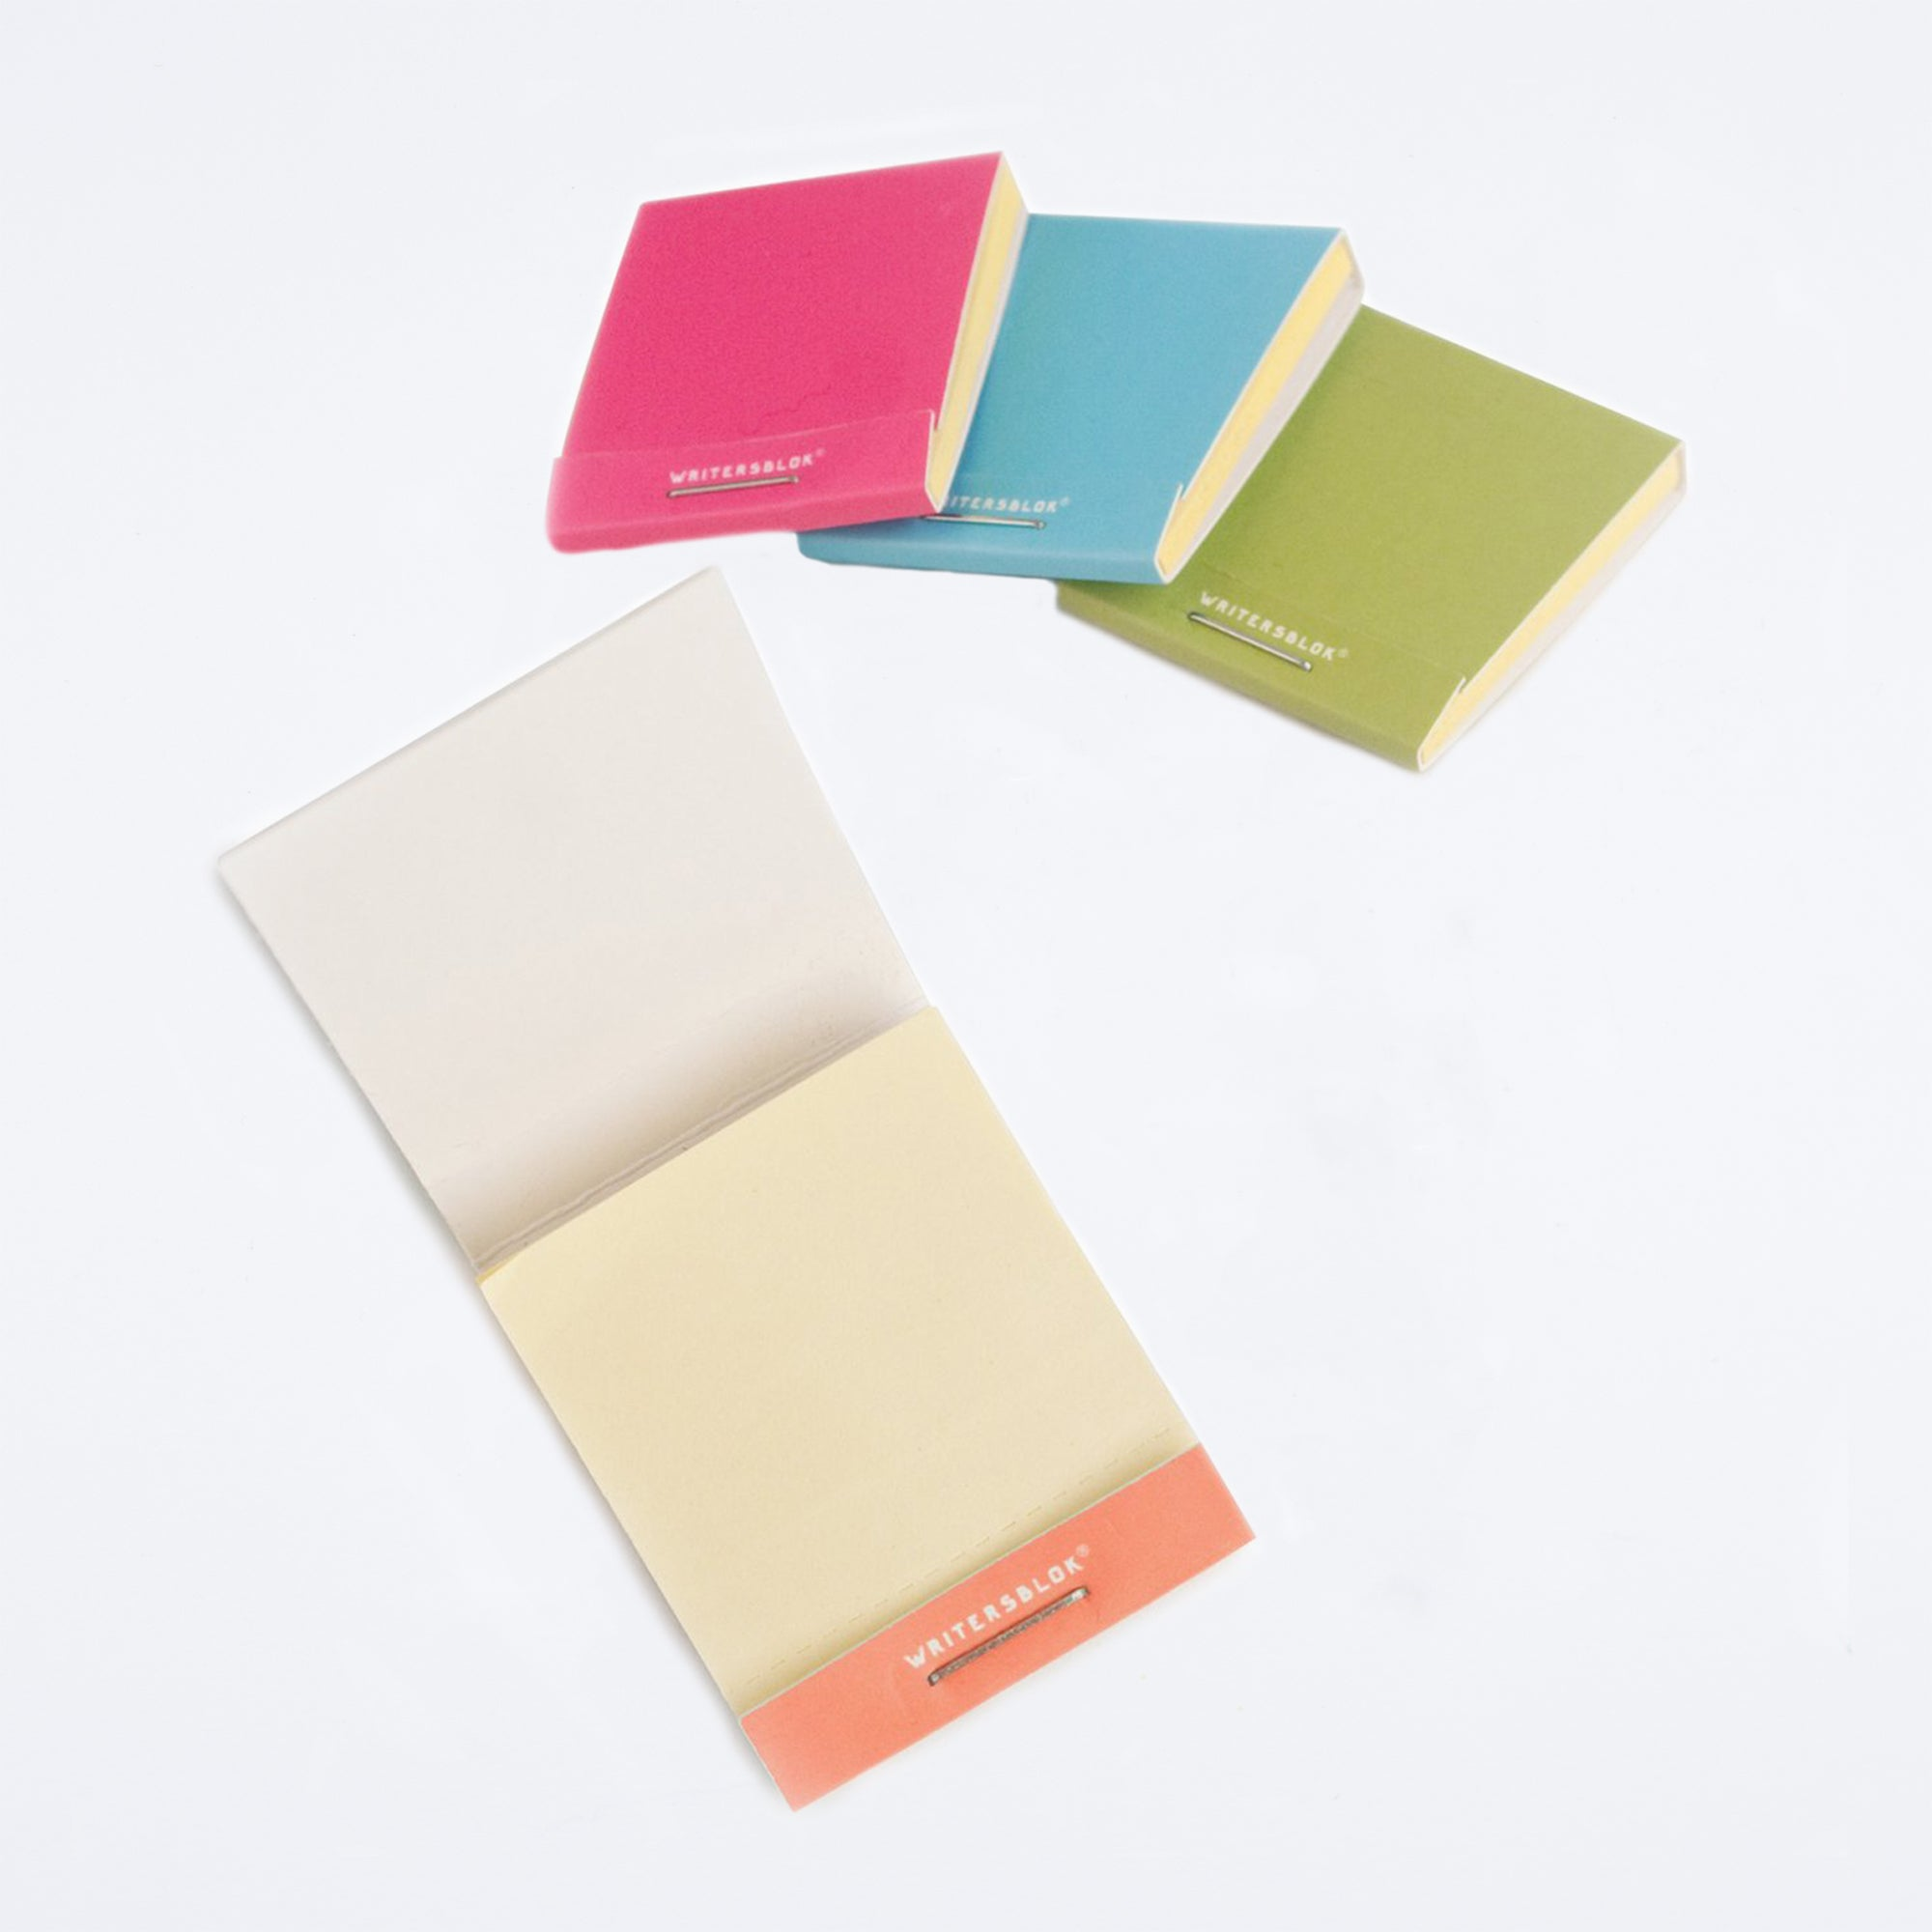 Matchbook Sticky Notes